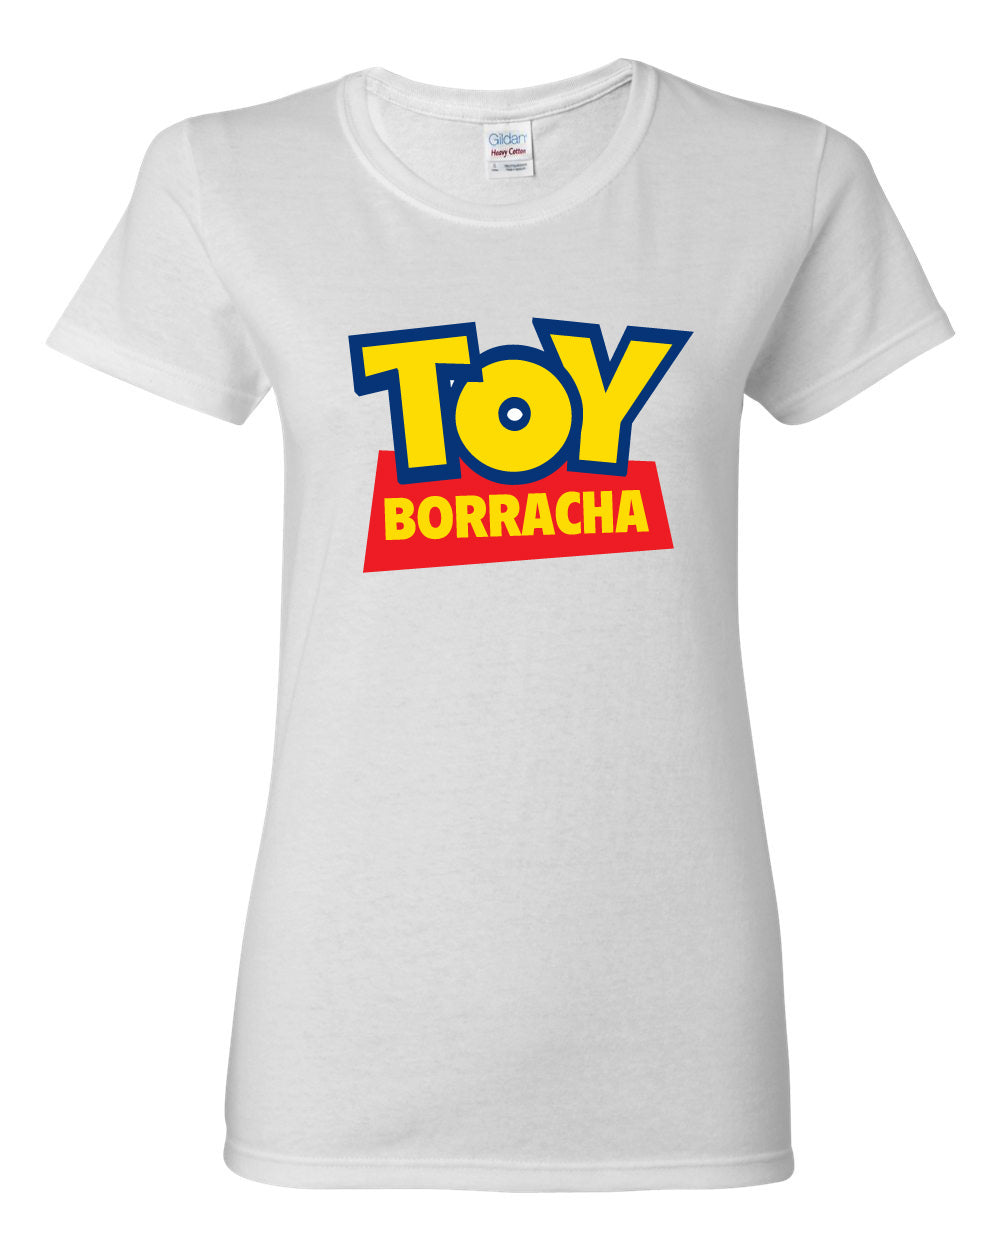 Toy Borracha Tshirt - Women White Tee